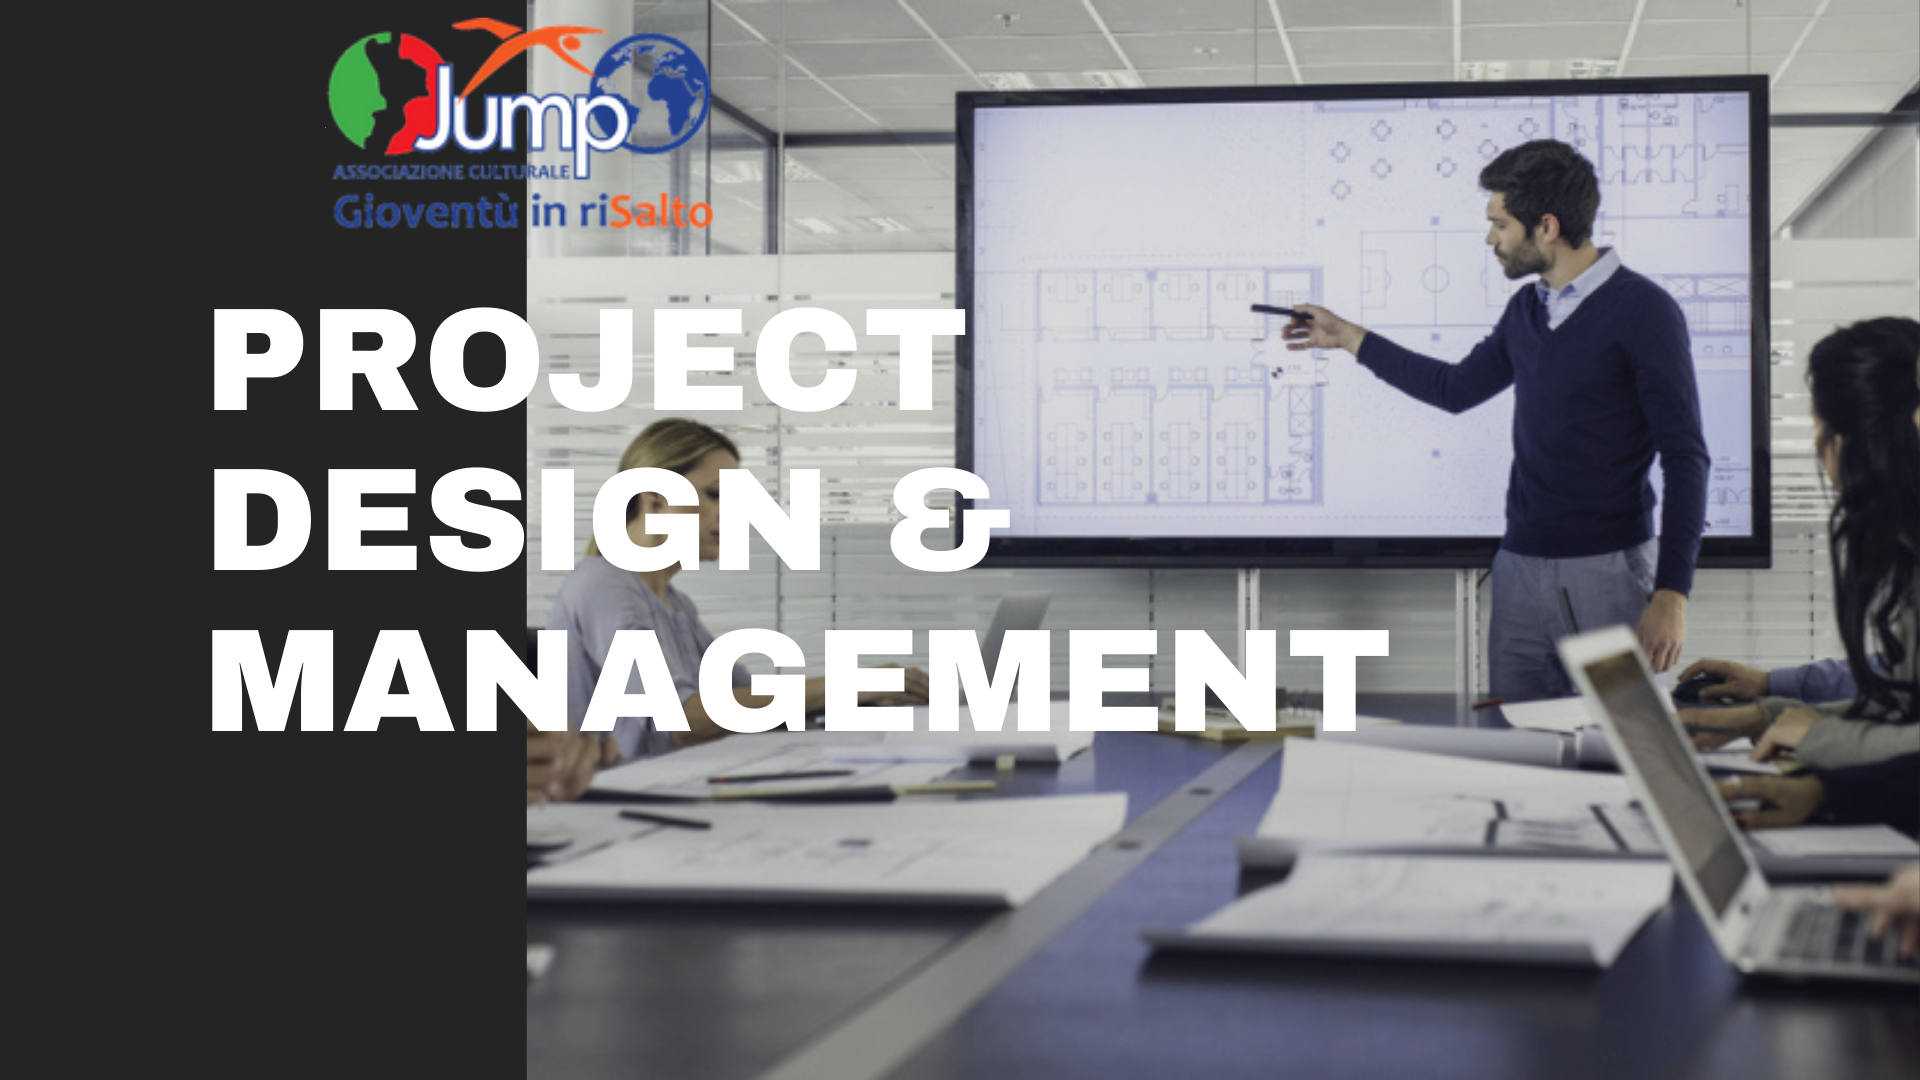 Project Design and Management